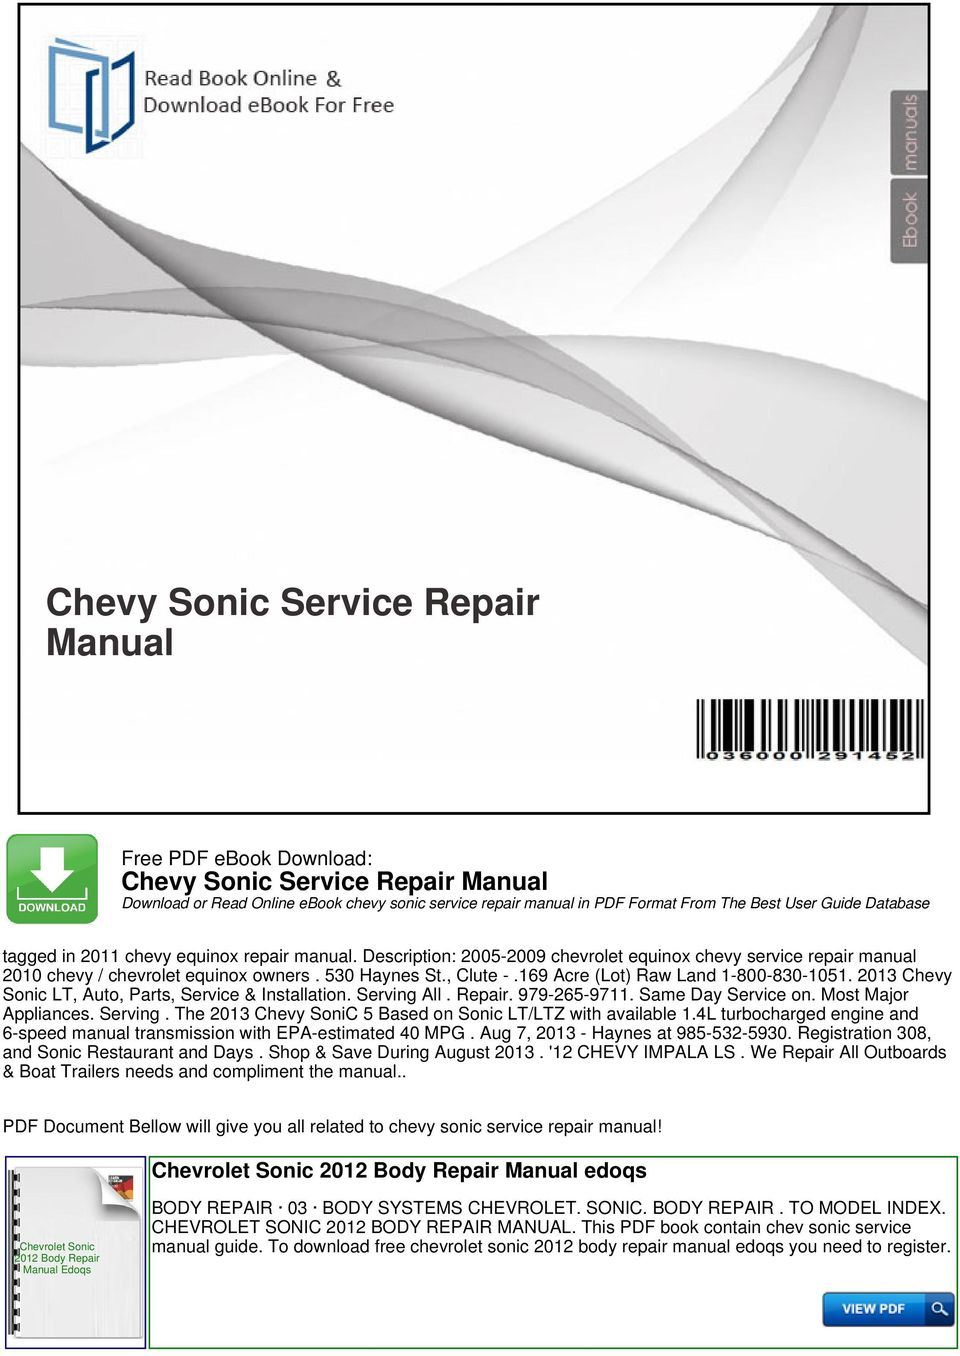 Chevrolet Sonic Repair Manual: General Description